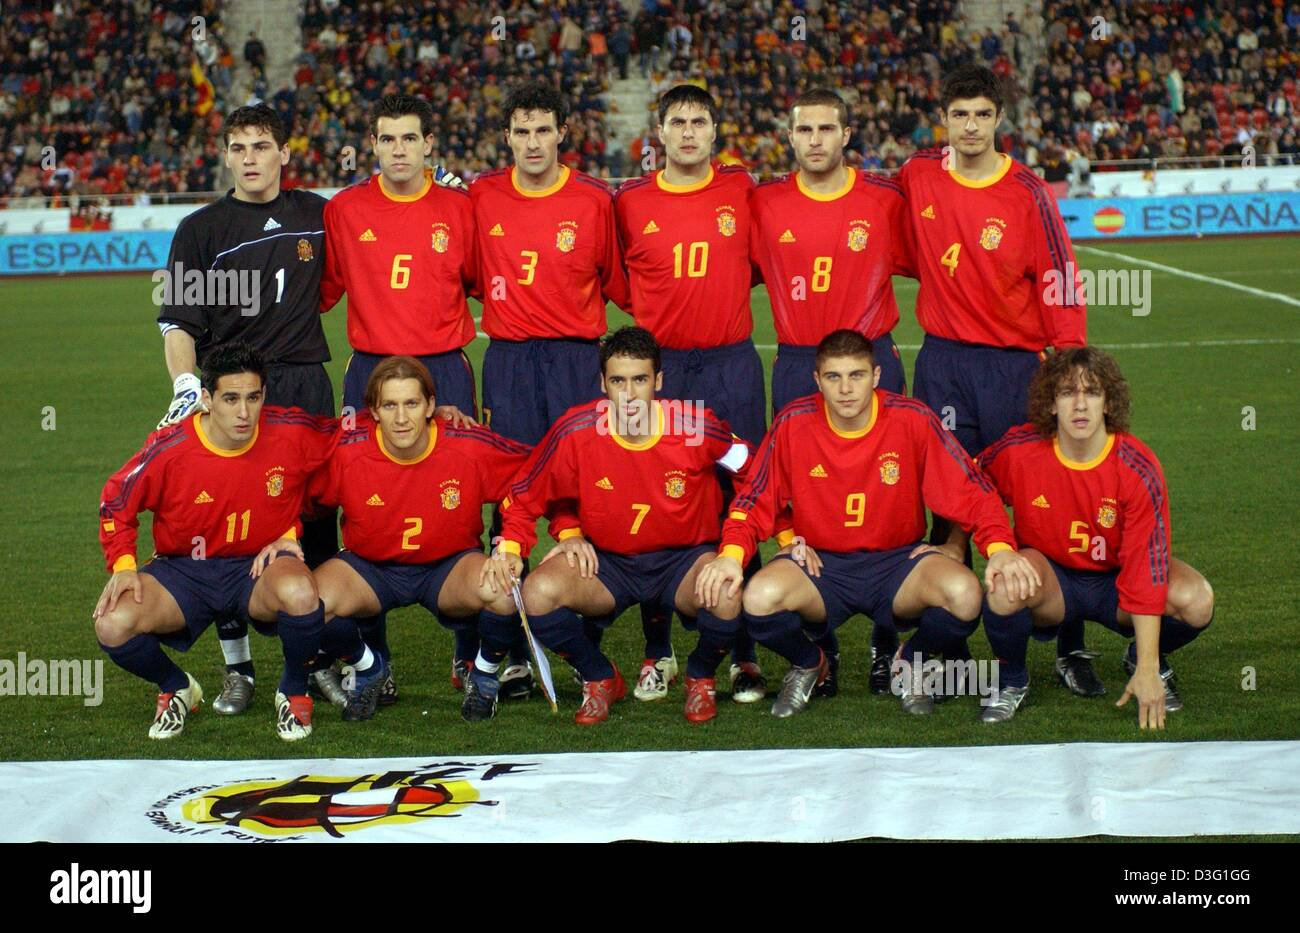 (dpa) - The Spanish national soccer team poses for the camera on the pitch before the international game Spain against - Stock Image